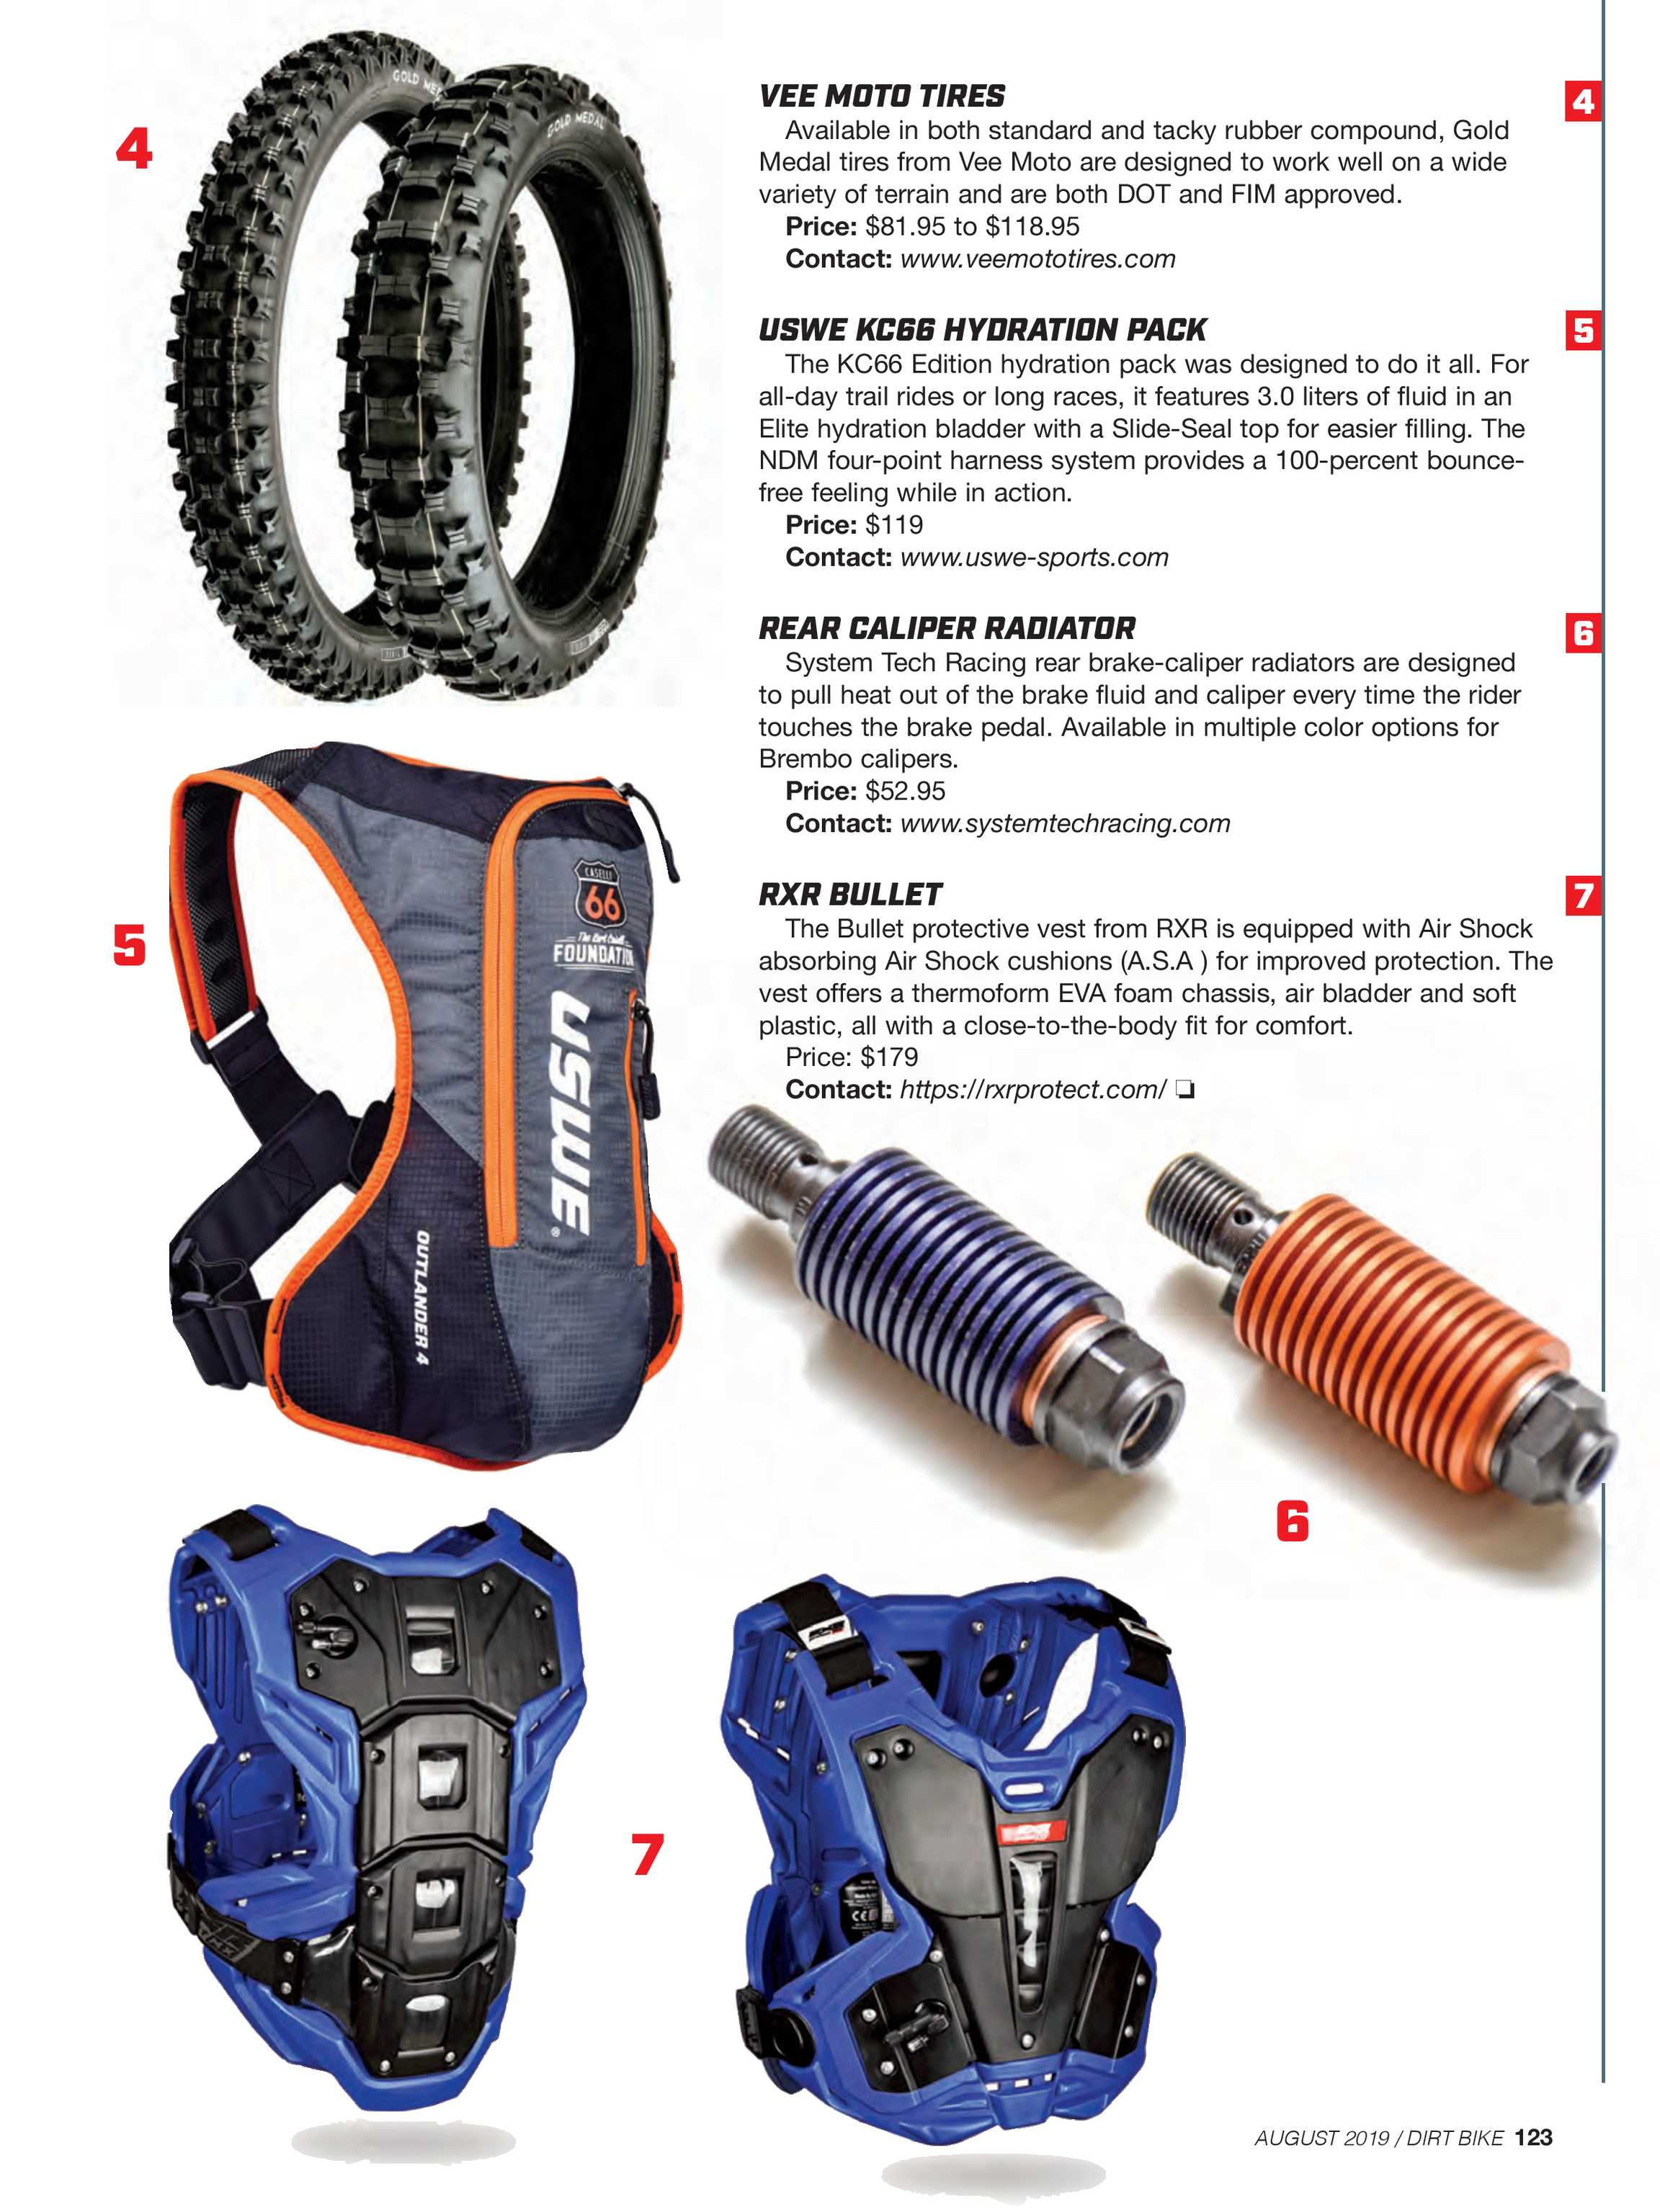 Dirt Bike Magazine - August 2019 - page 122